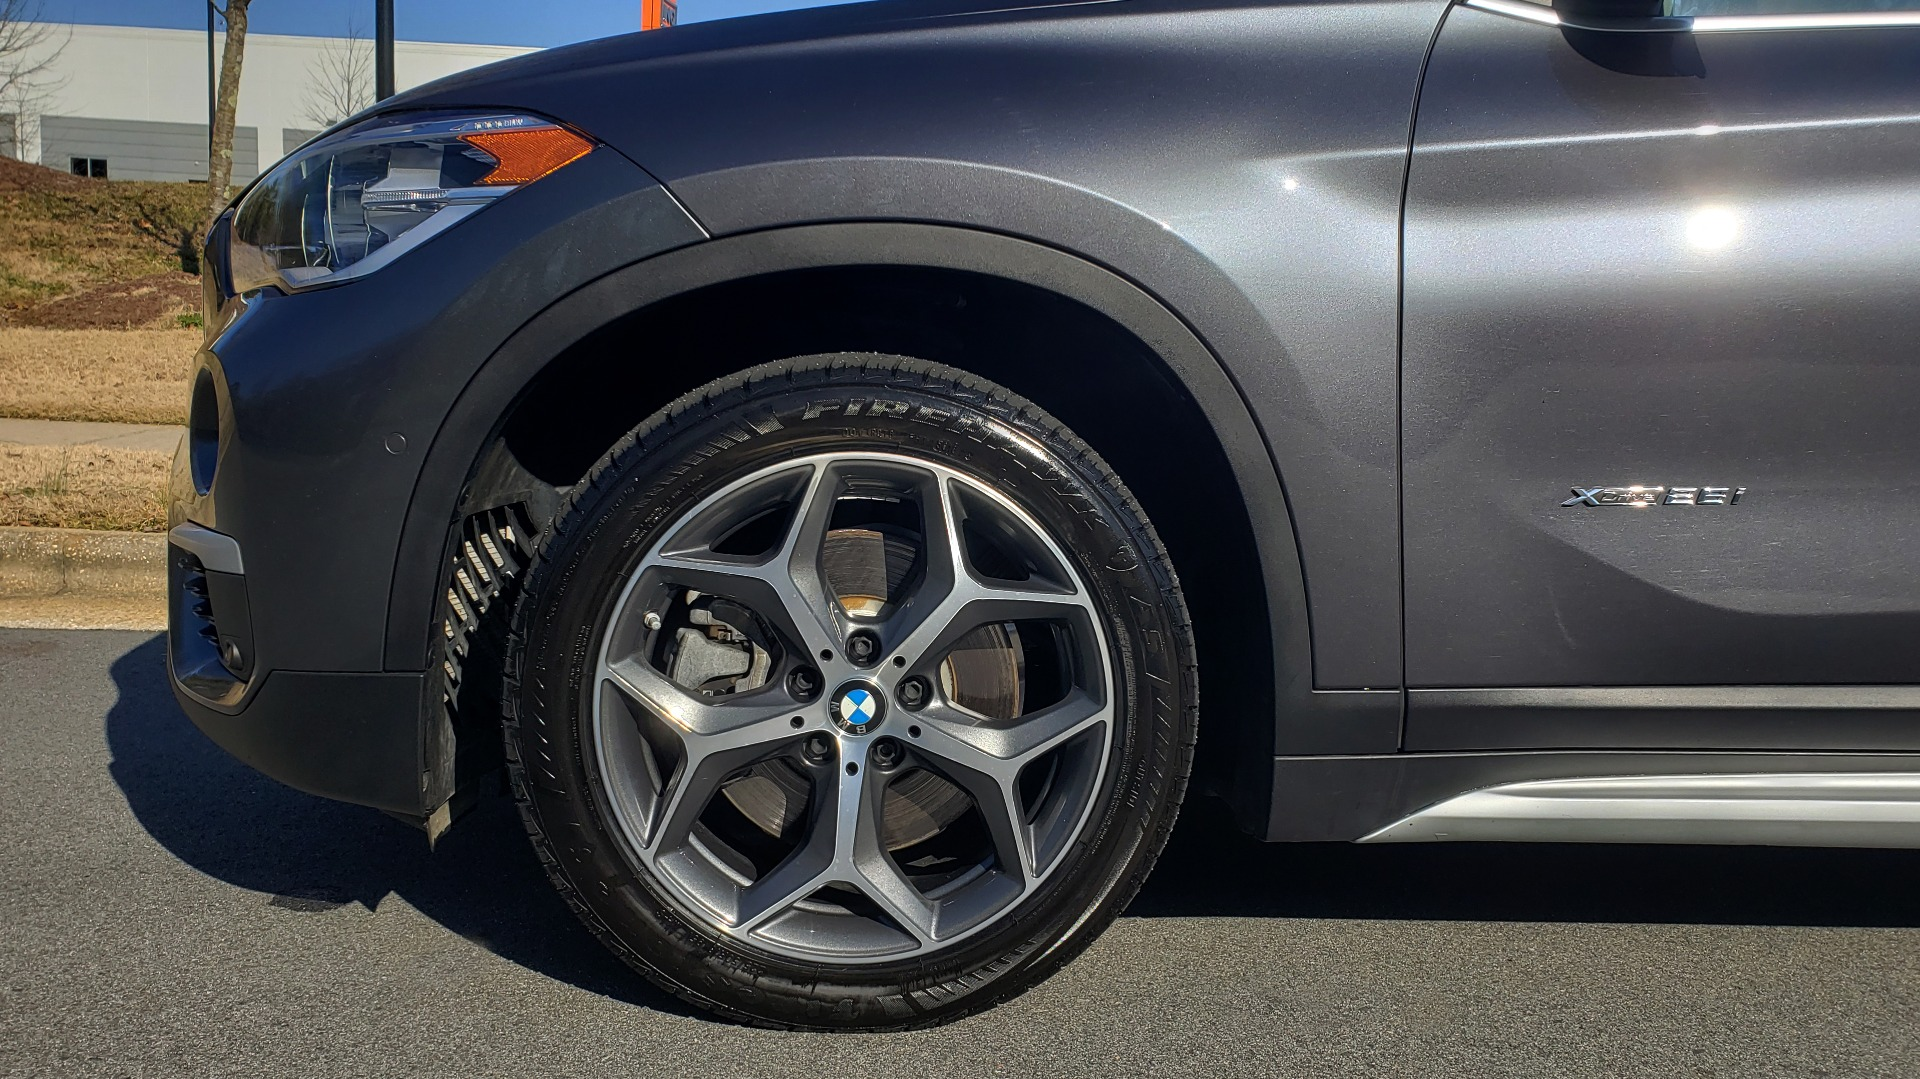 Used 2017 BMW X1 XDRIVE28I / PREM / TECH / DRVR ASST PLUS / COLD WTHR / REARVIEW for sale $26,995 at Formula Imports in Charlotte NC 28227 80